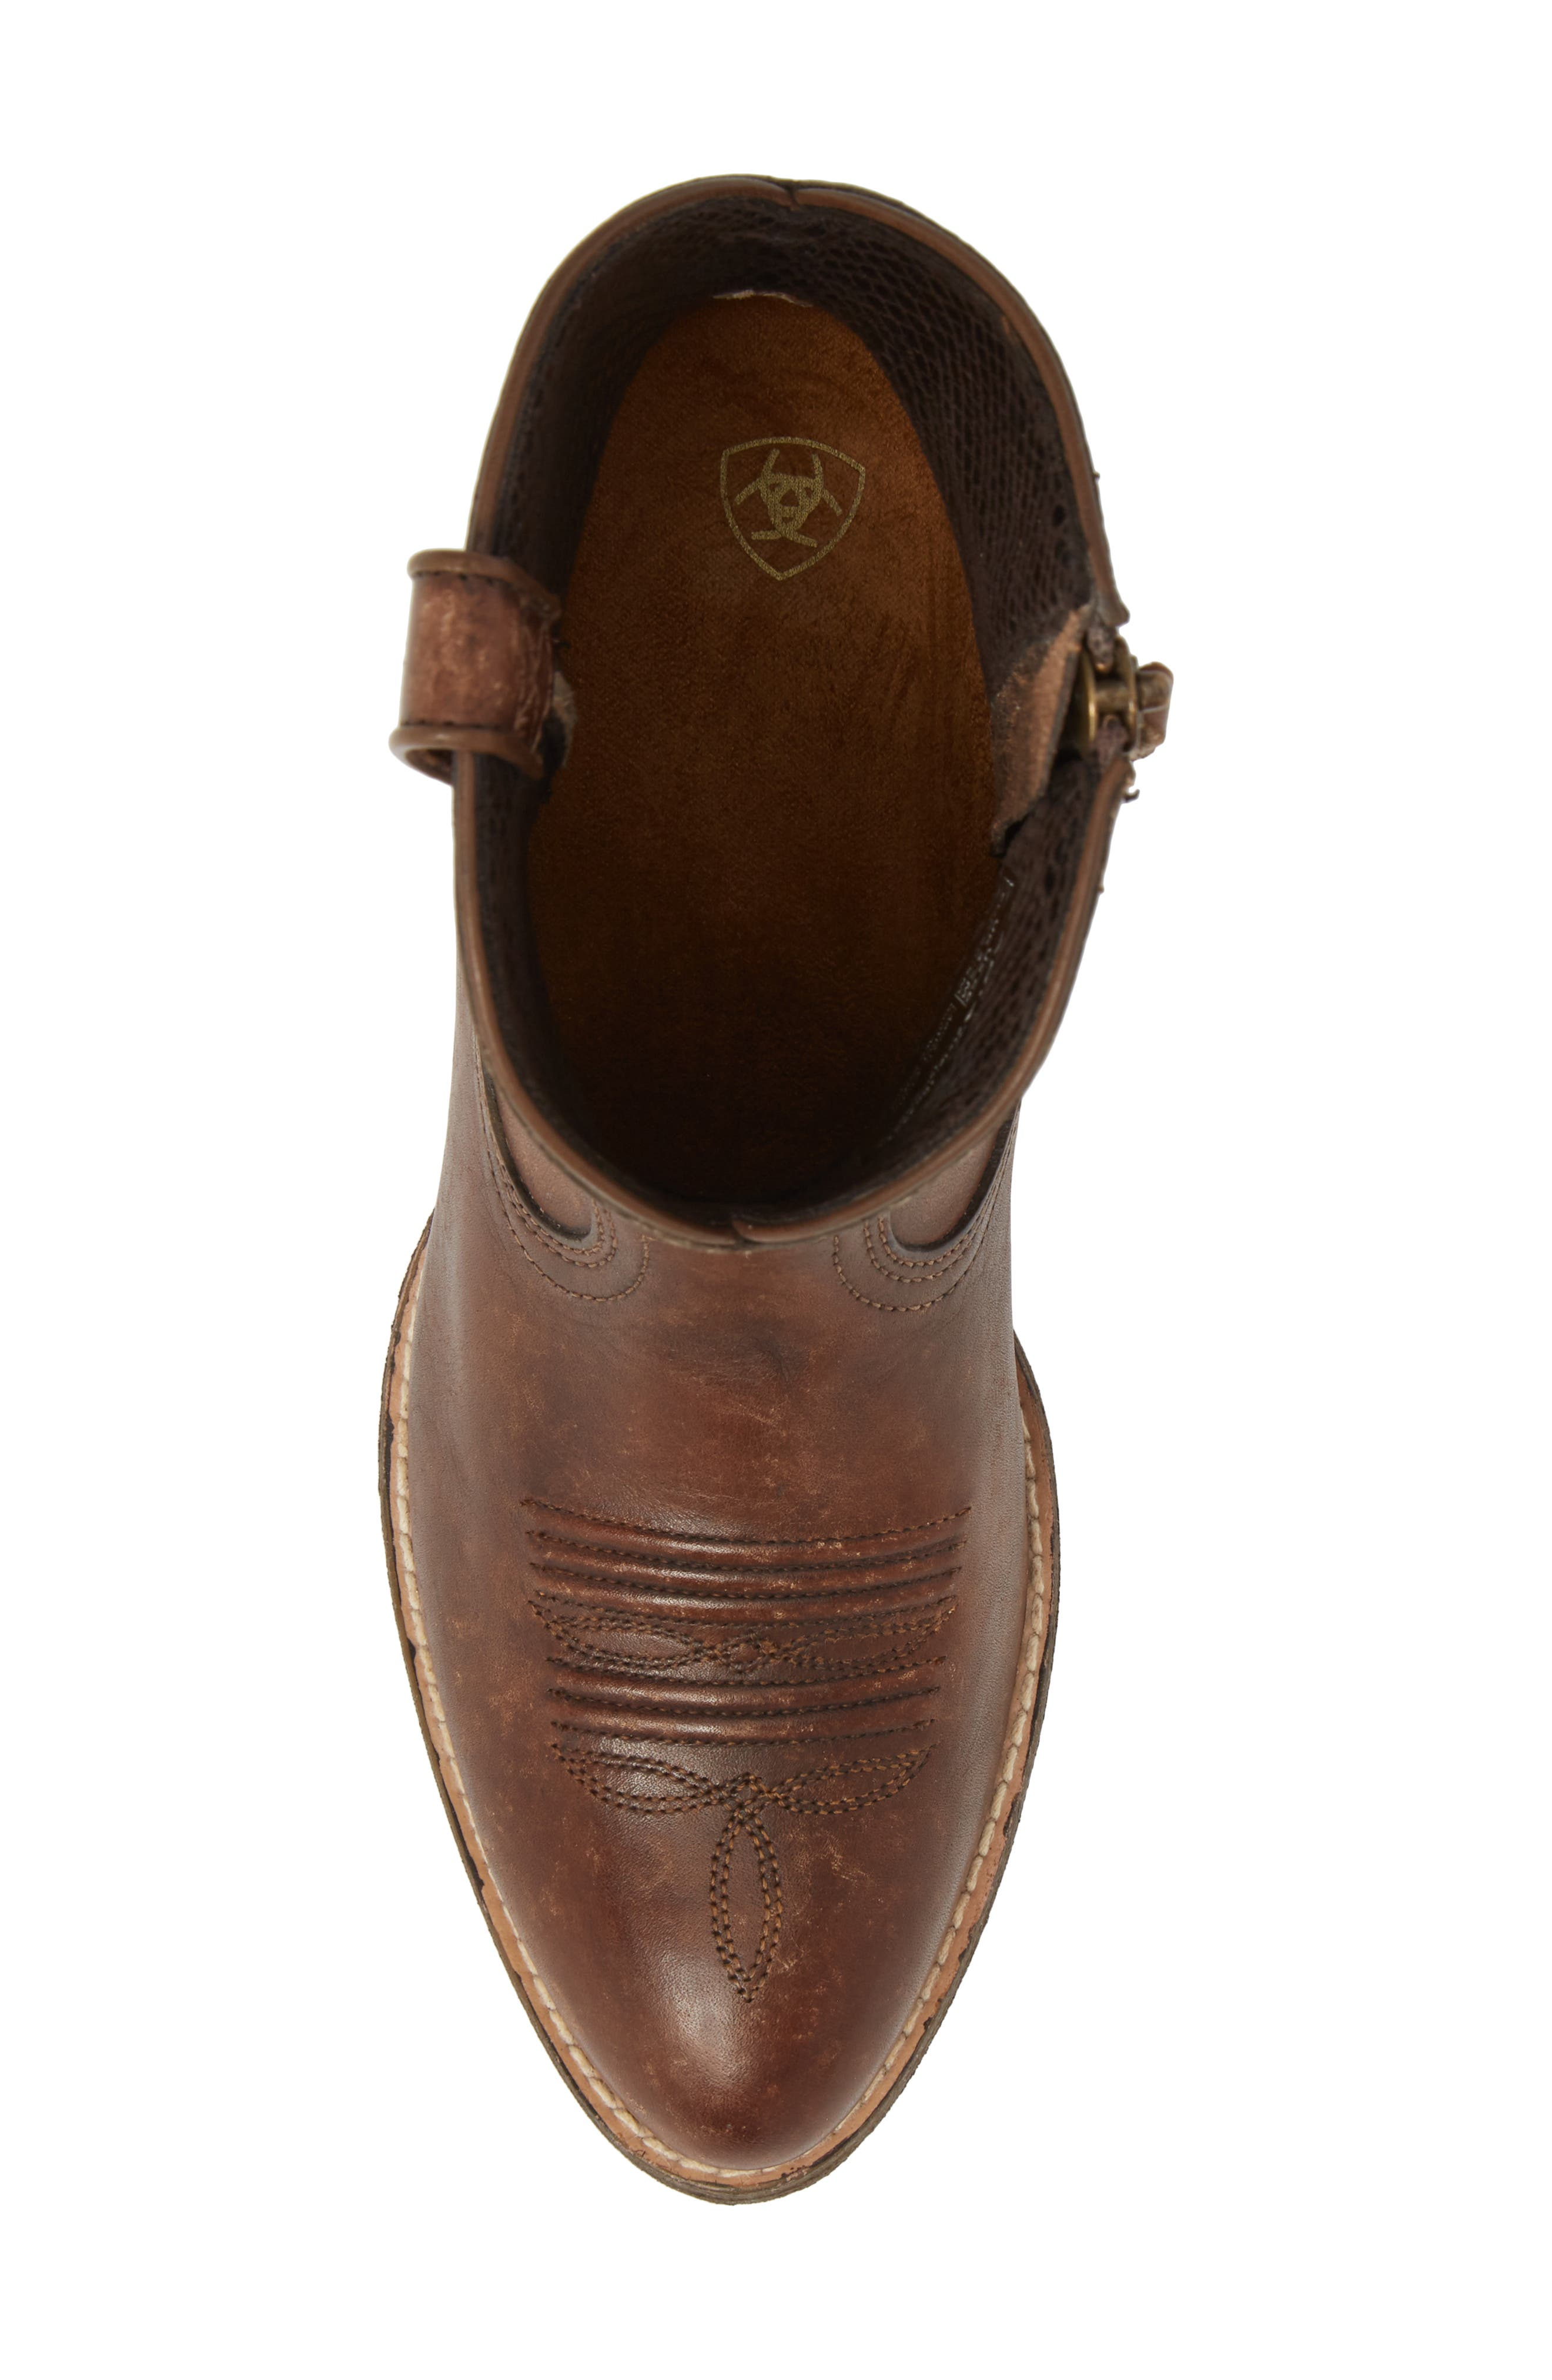 Darlin Short Western Boot,                             Alternate thumbnail 4, color,                             Distressed Brown Leather